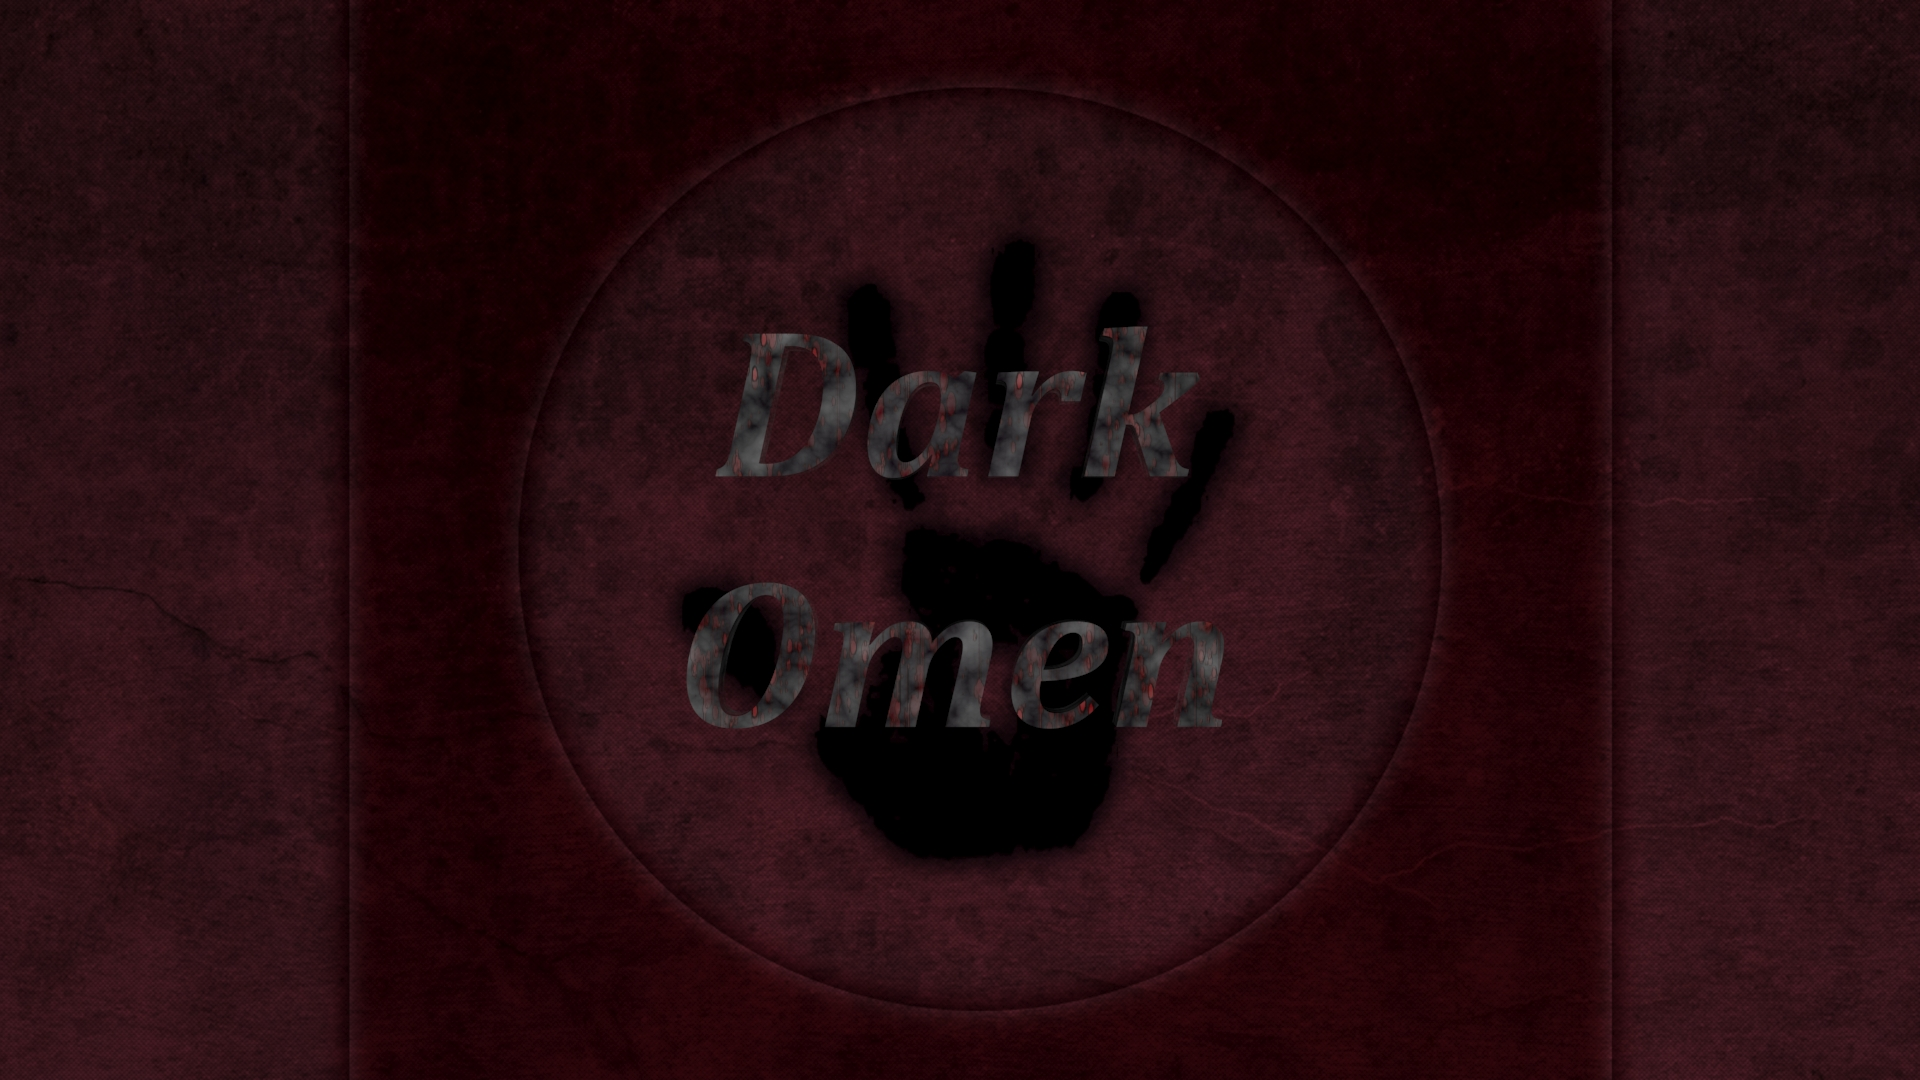 New Thief spell - Dark Omen